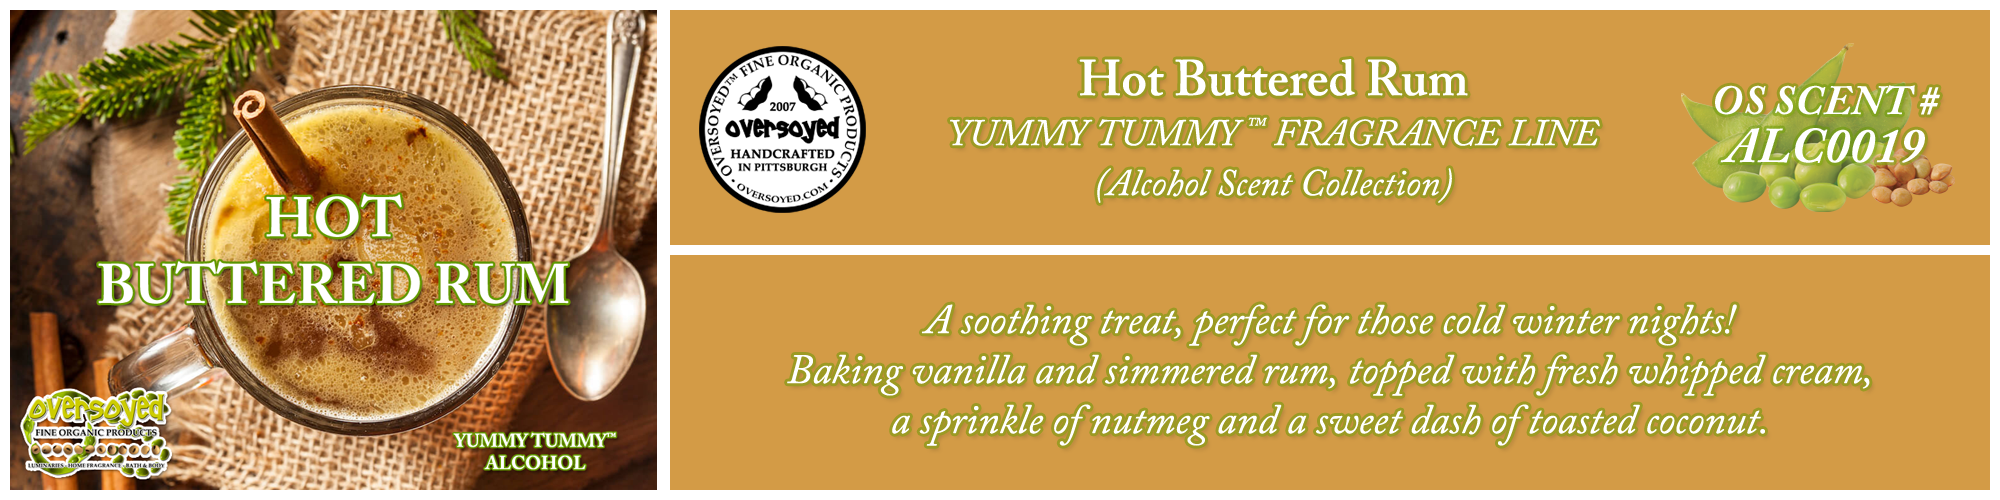 Hot Buttered Rum Handcrafted Products Collection